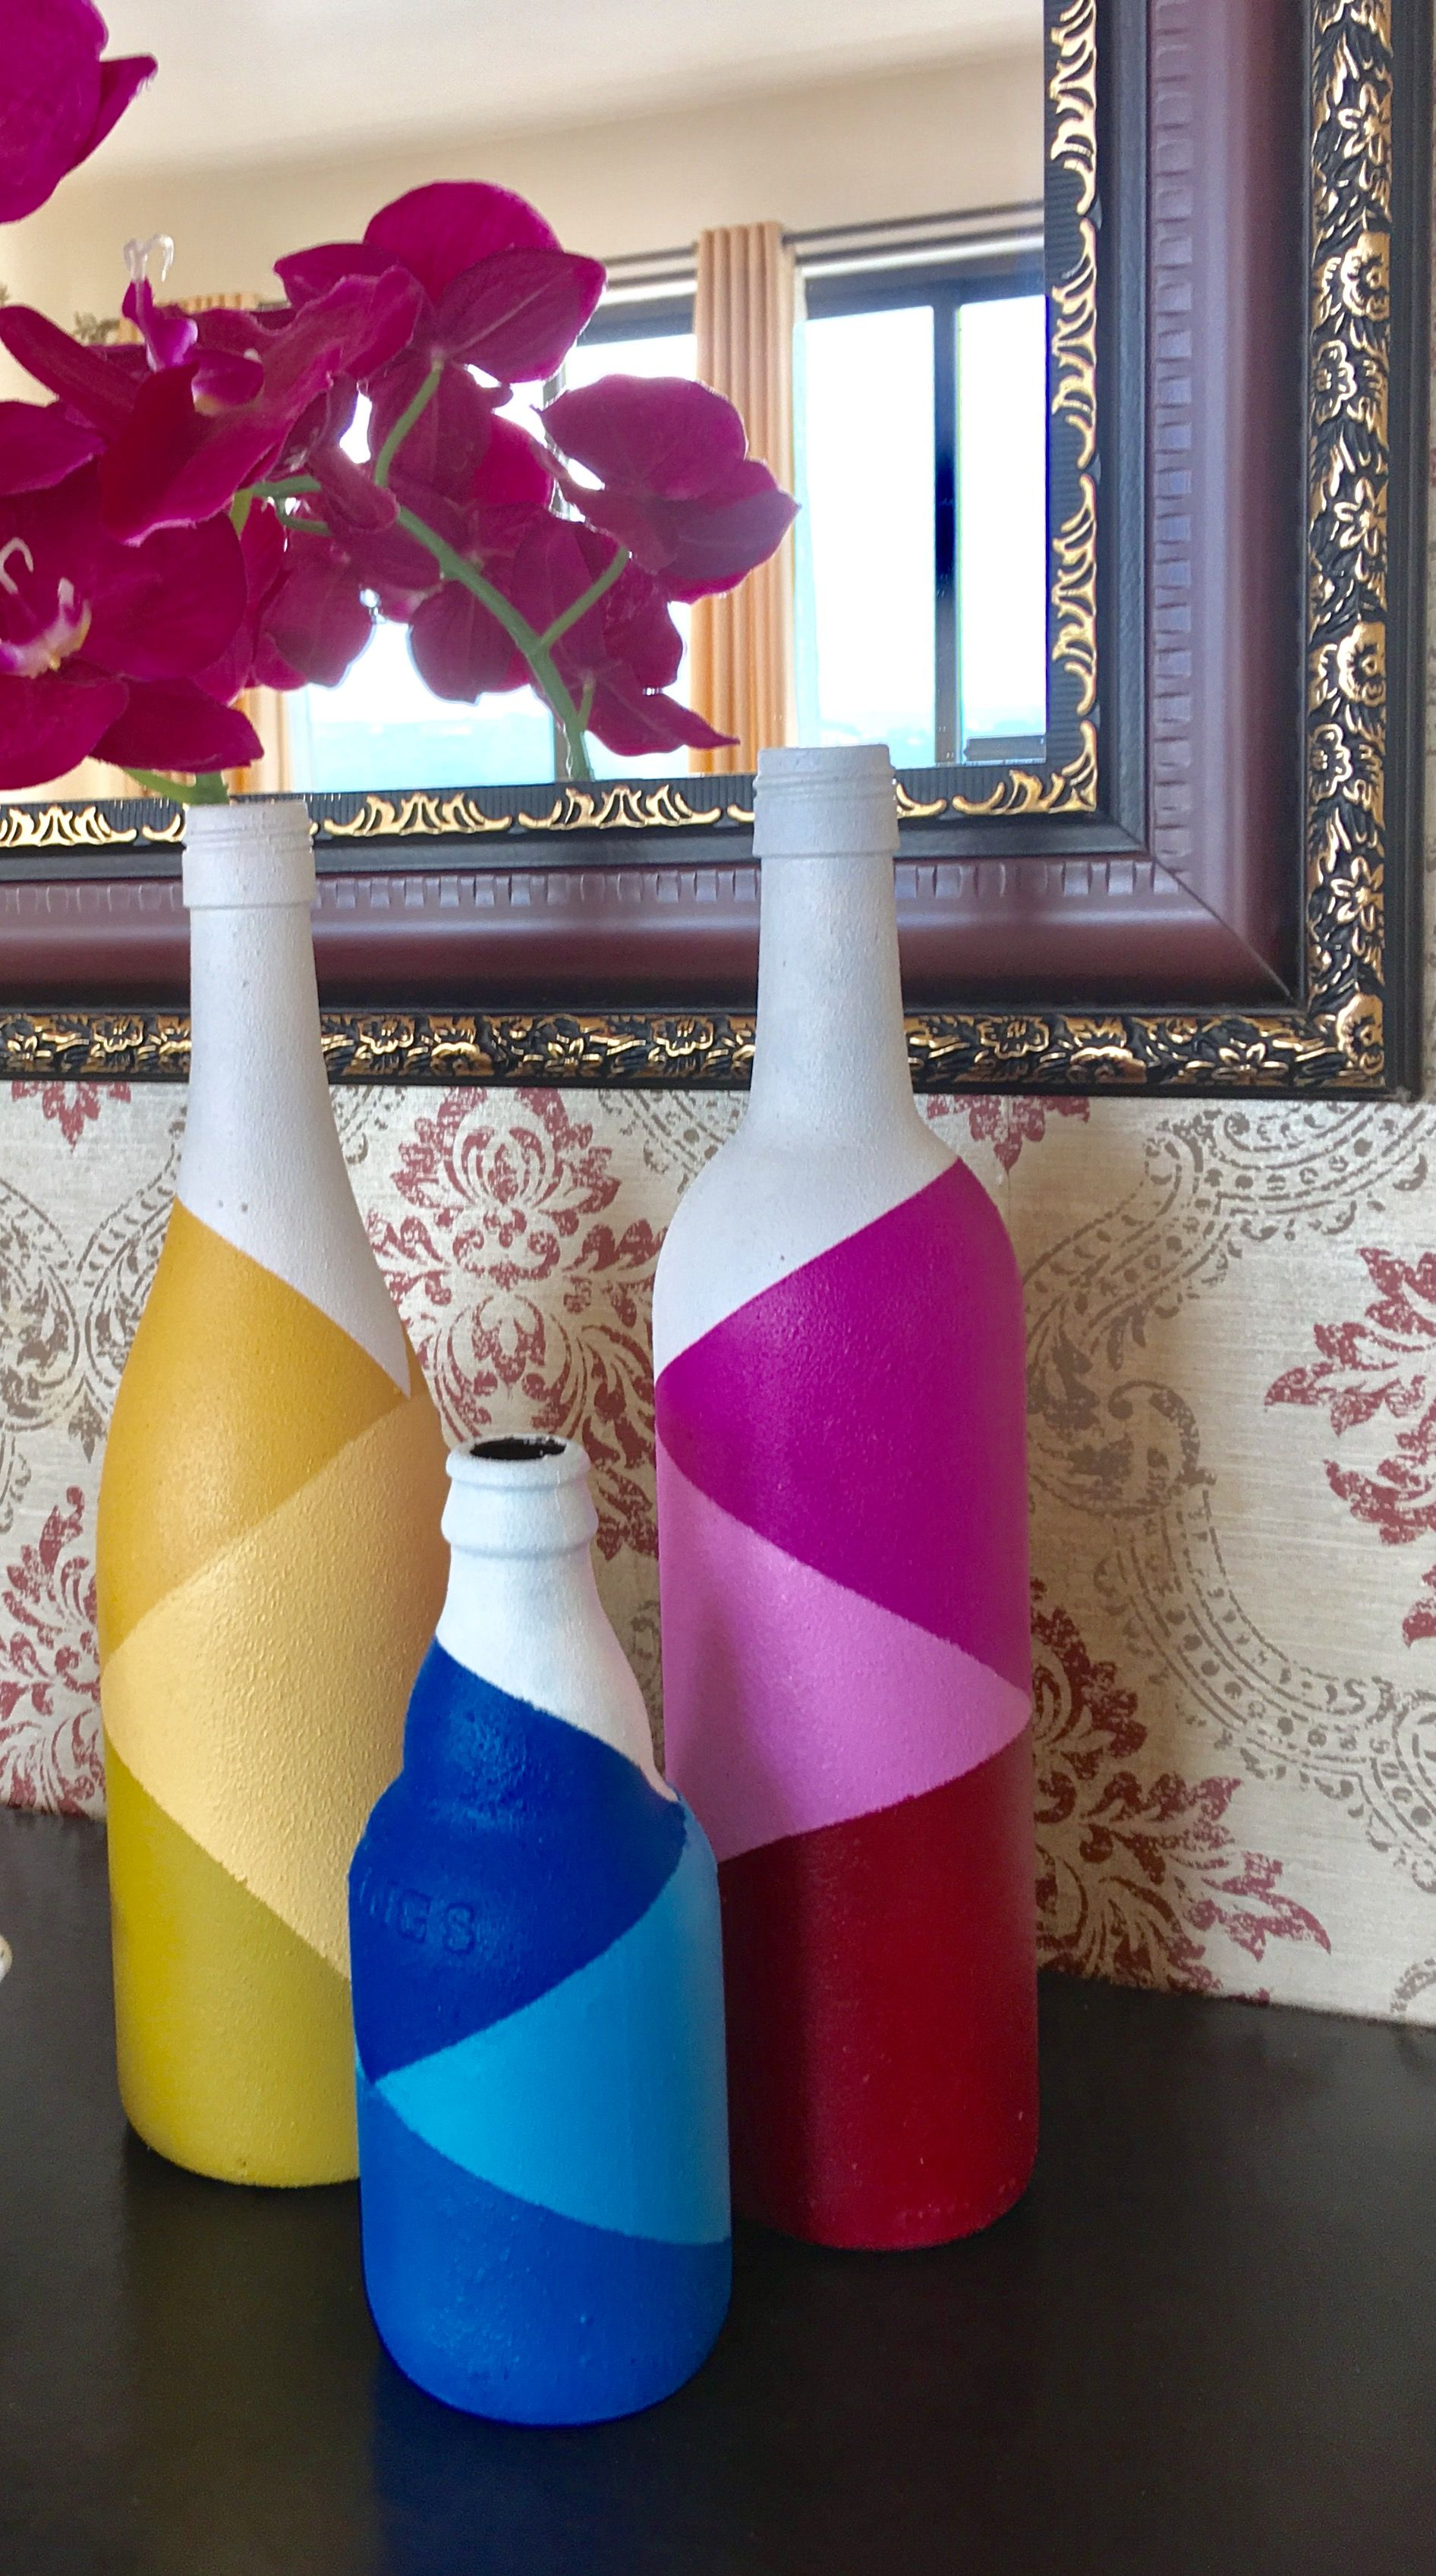 Upcycle Paint Glass Bottles With A Simple Two Ingredient Easy To Make Chalk Paint Painted Glass Bottles Hand Painted Wine Bottles Upcycle Glass